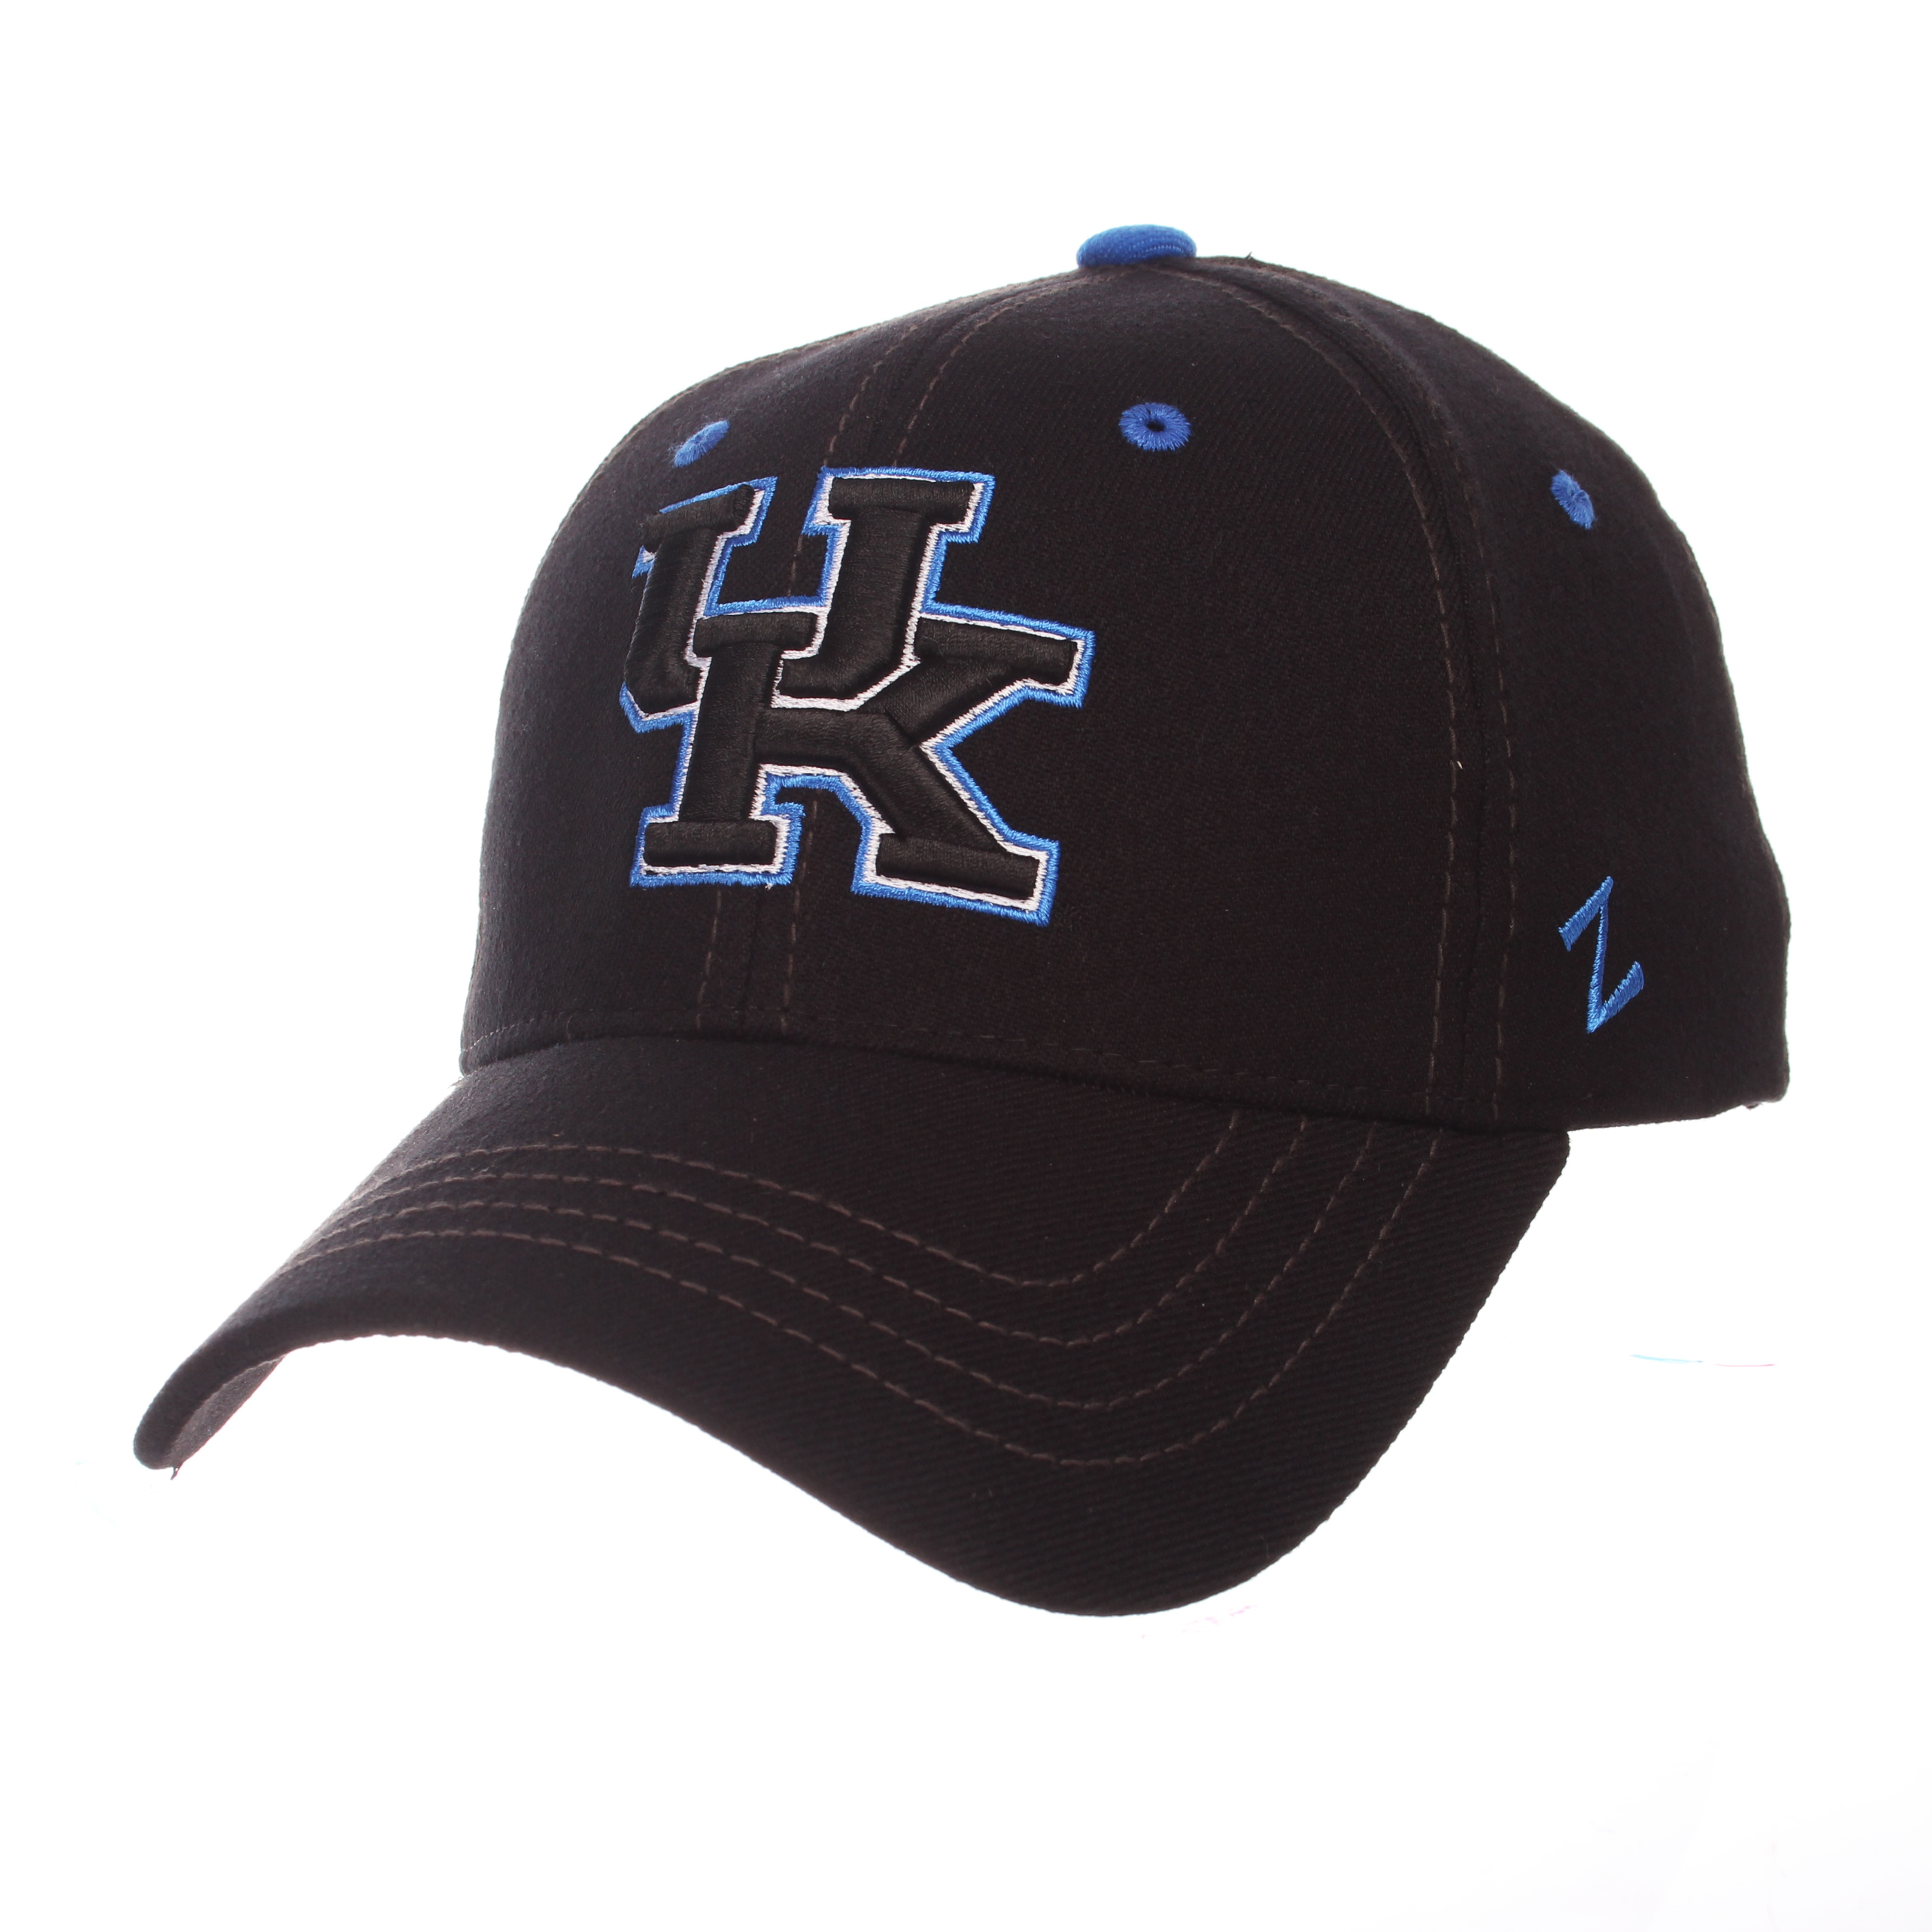 cheap for discount 0c412 c5293 University of Kentucky Black Element Hat (Large)